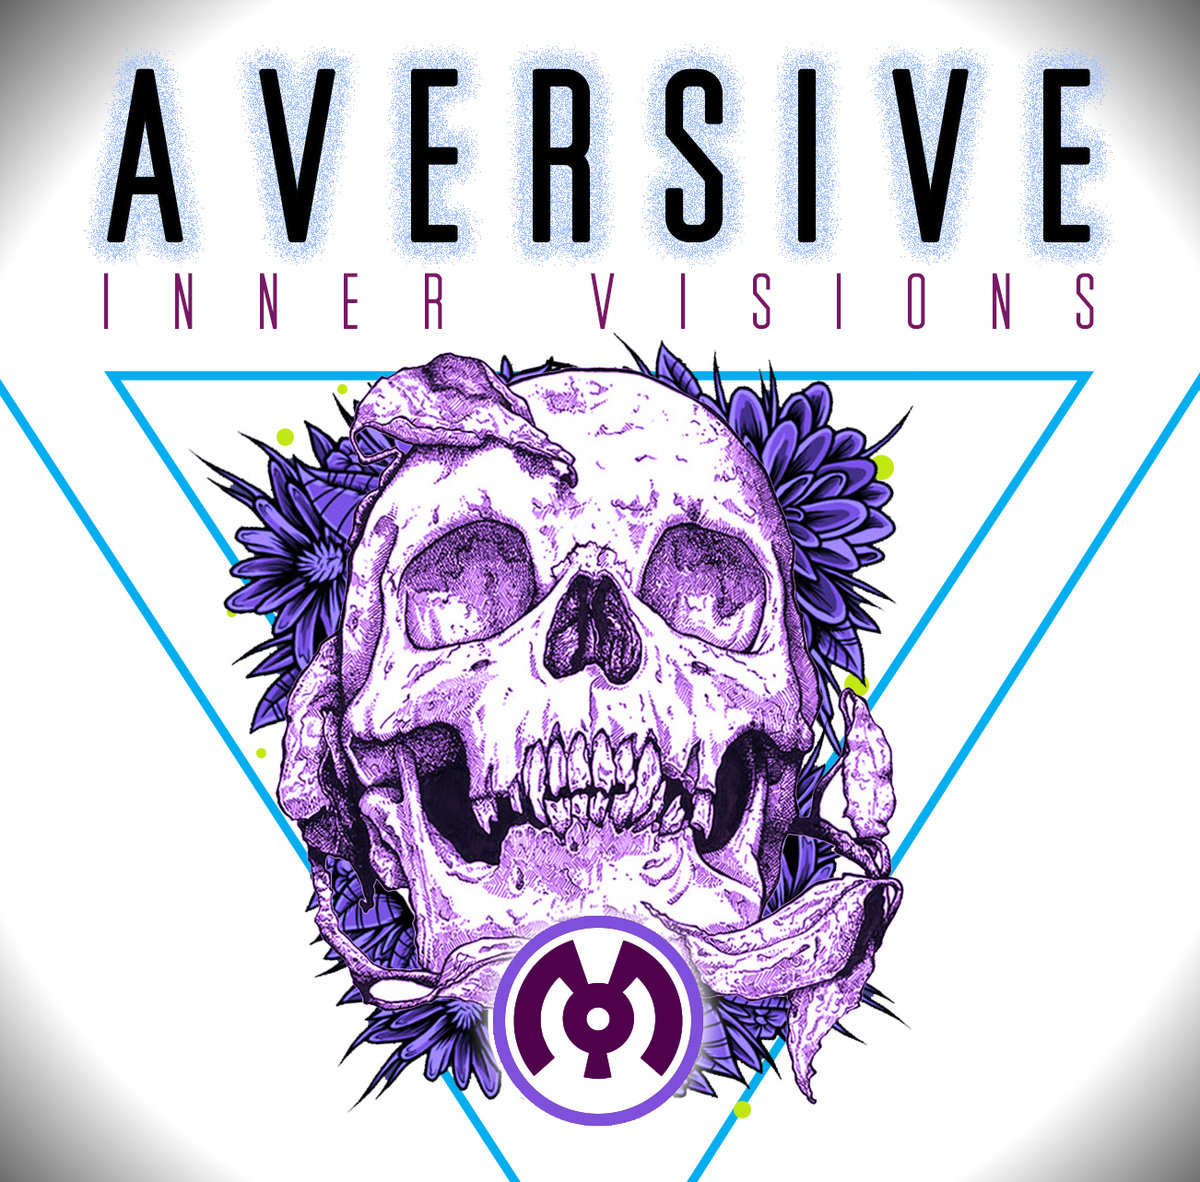 Aversive - Visions Of The Heart @ 'Inner Visions' album (electronic, dubstep)